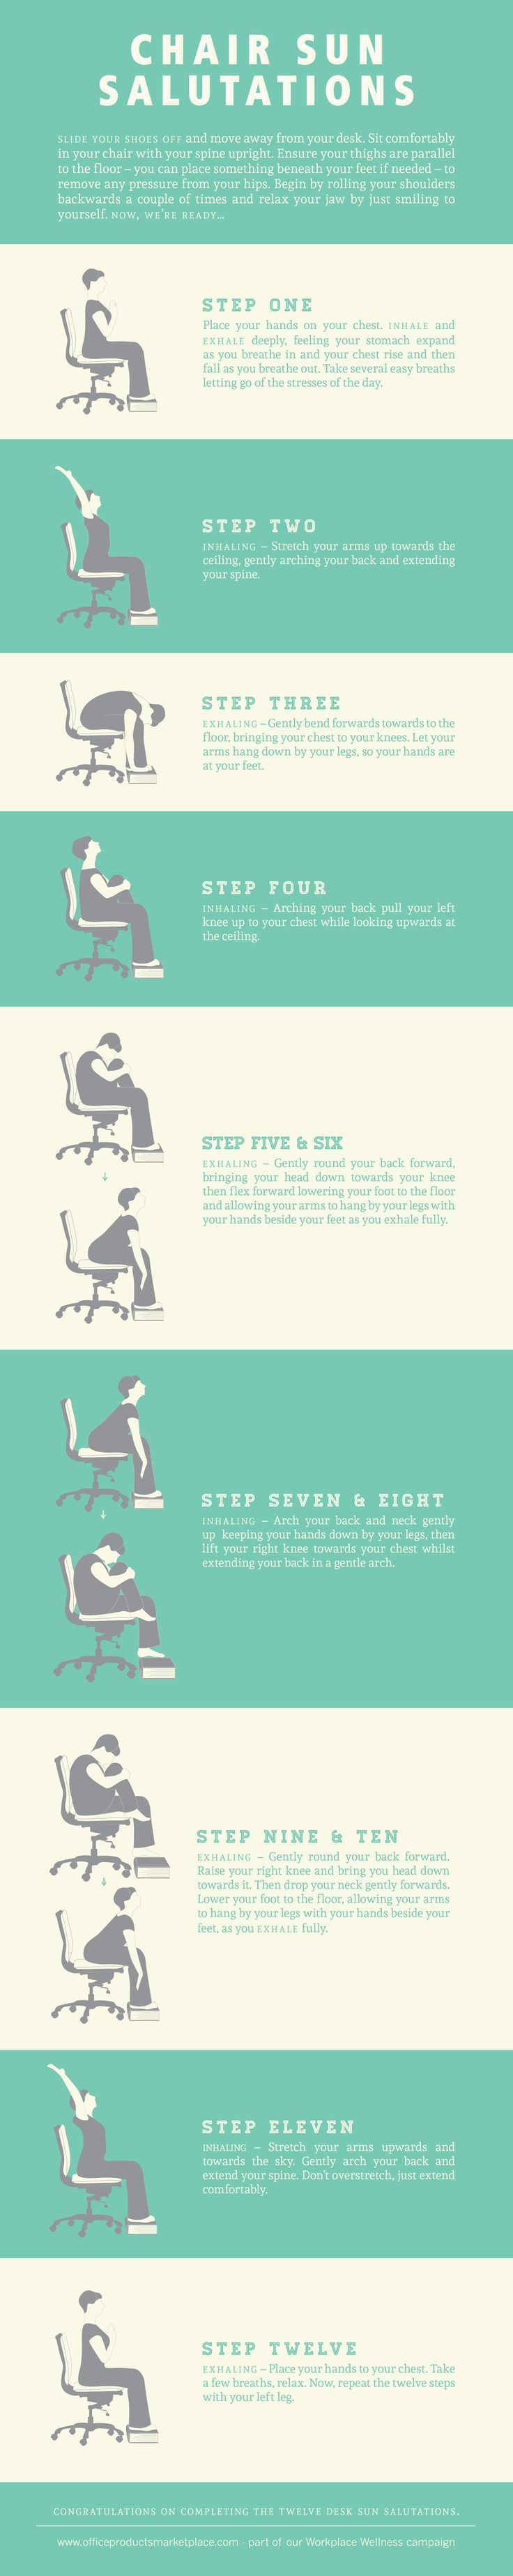 Here is a great info-graphic that explains the many yoga poses you can accomplish at your desk (or anywhere for that matter). Leave a comment as to where you love to practice yoga!  #yoga #office #healthy